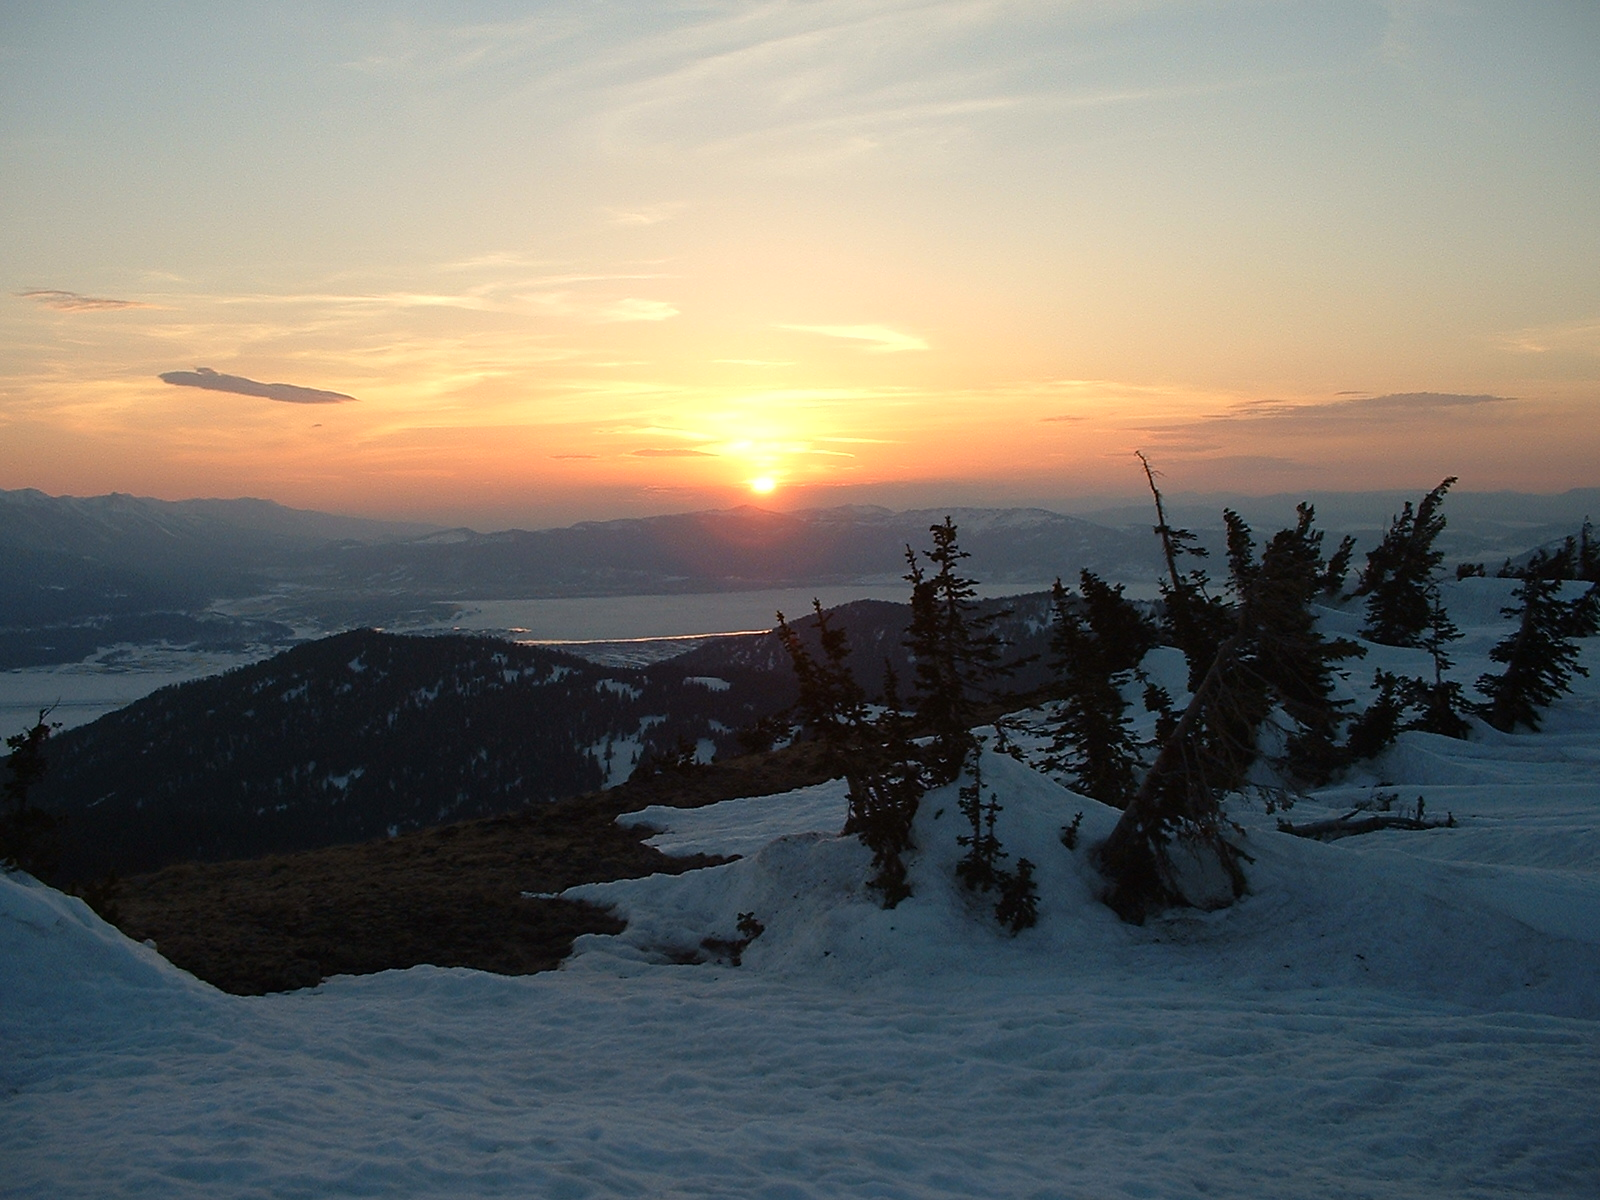 Sunset on Two Top Mountain